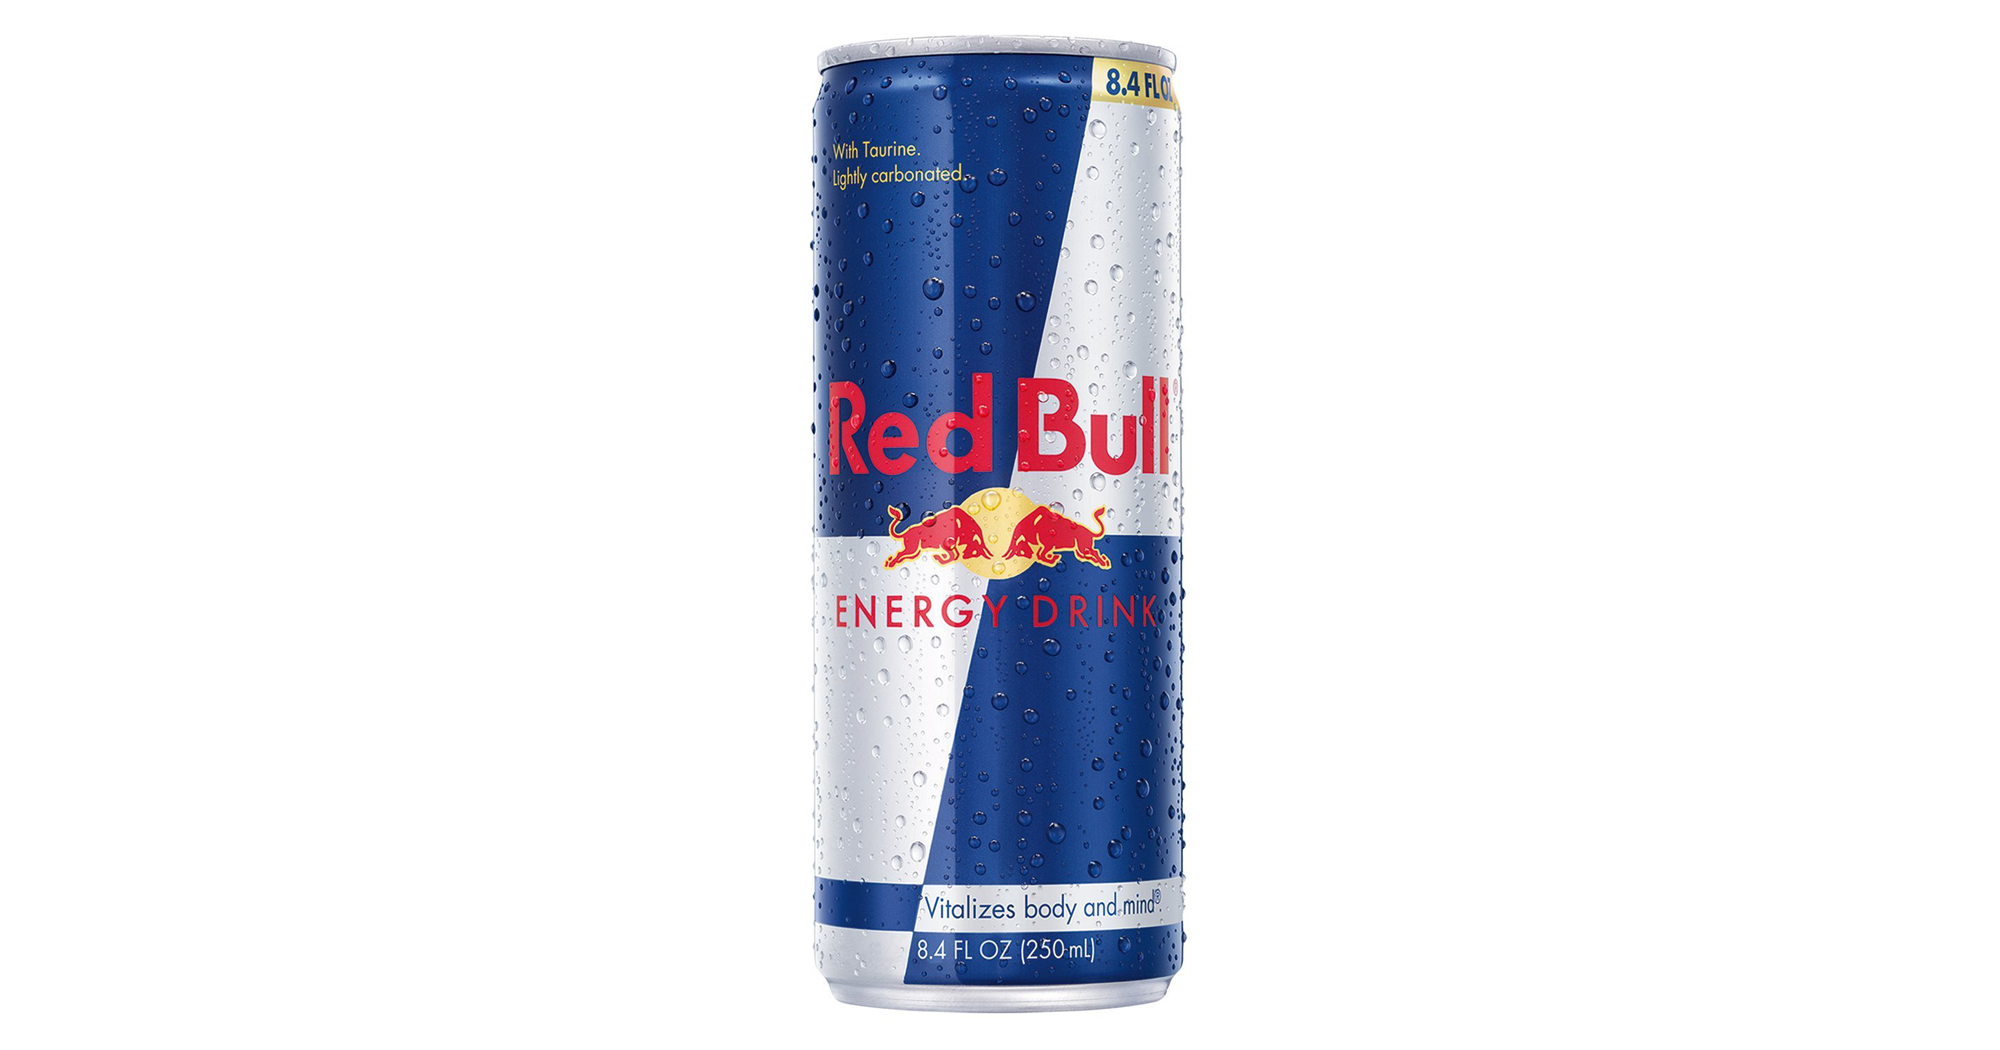 Red Bull Ingredients - Taurine Benefits Mental Health